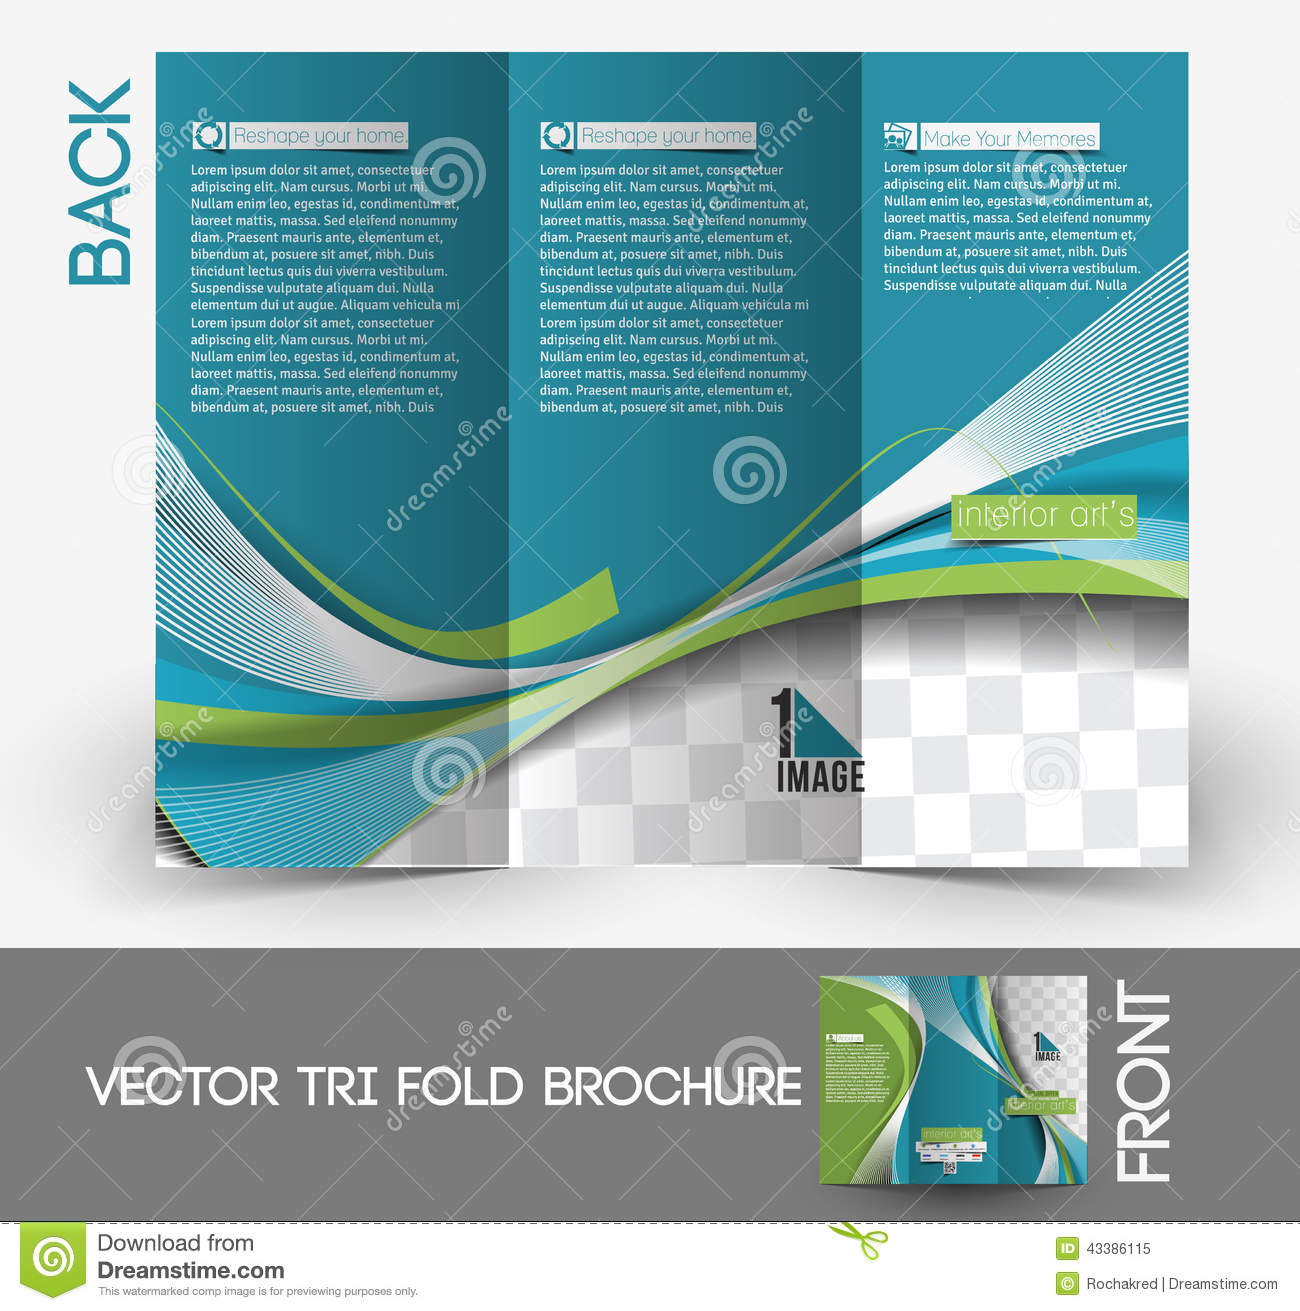 Architecture Brochure Design Designer Fold Interior